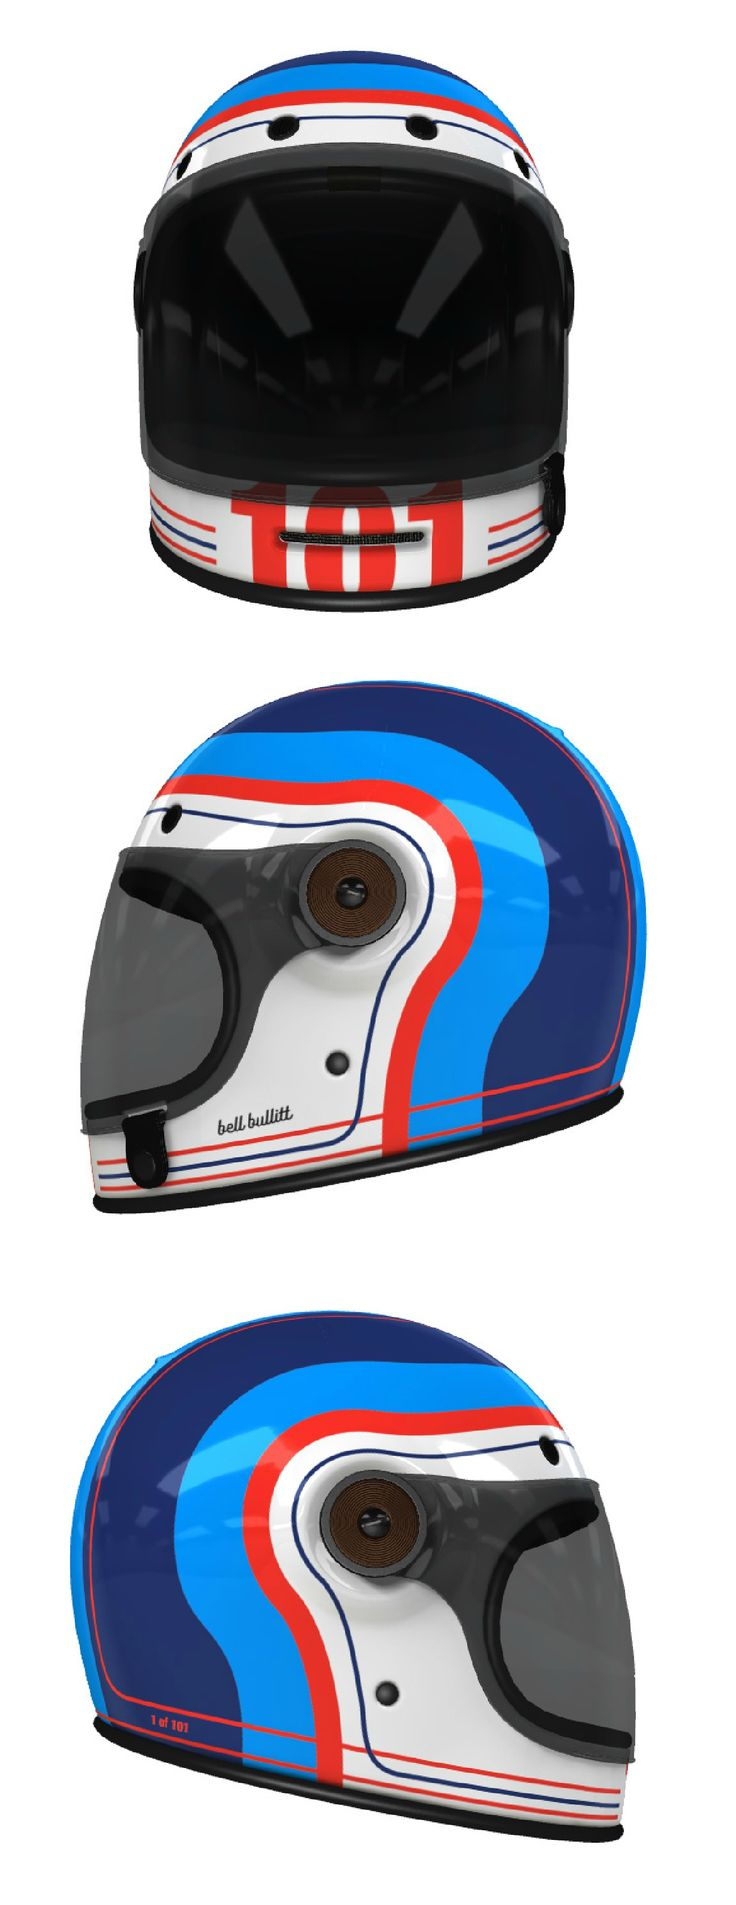 Custom Bell Bullitt Motorcycle Helmet Design at Helmade